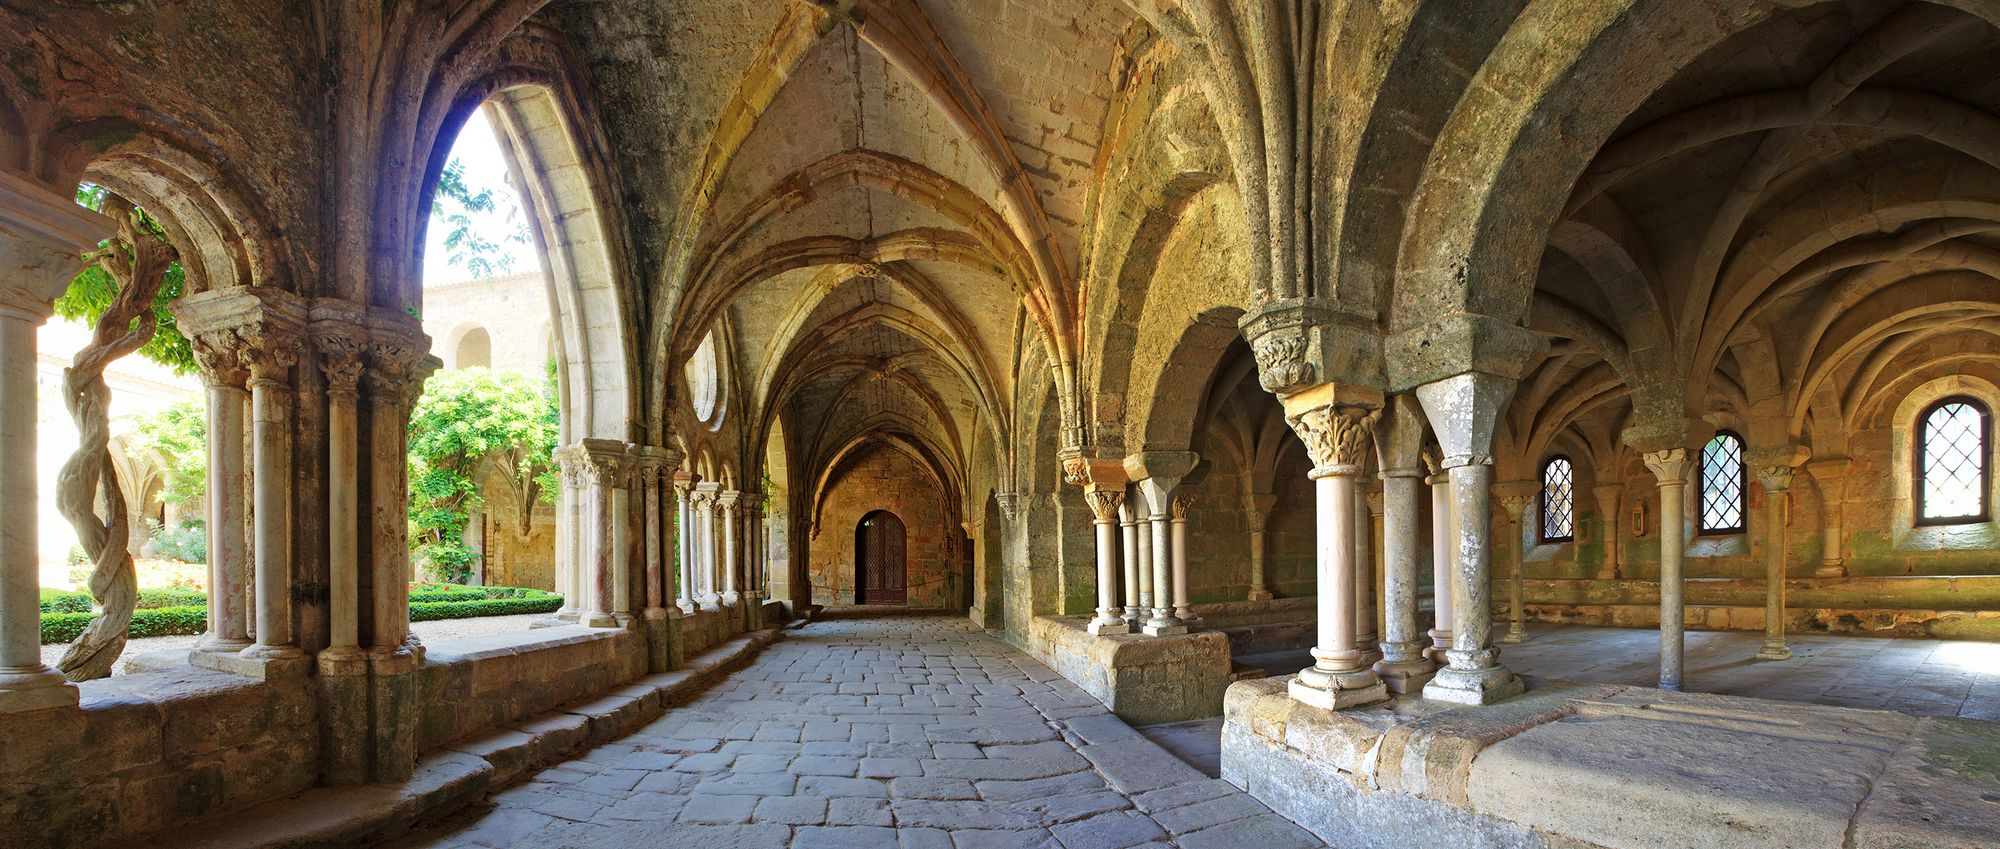 Abbaye de vaucelles marriage licenses